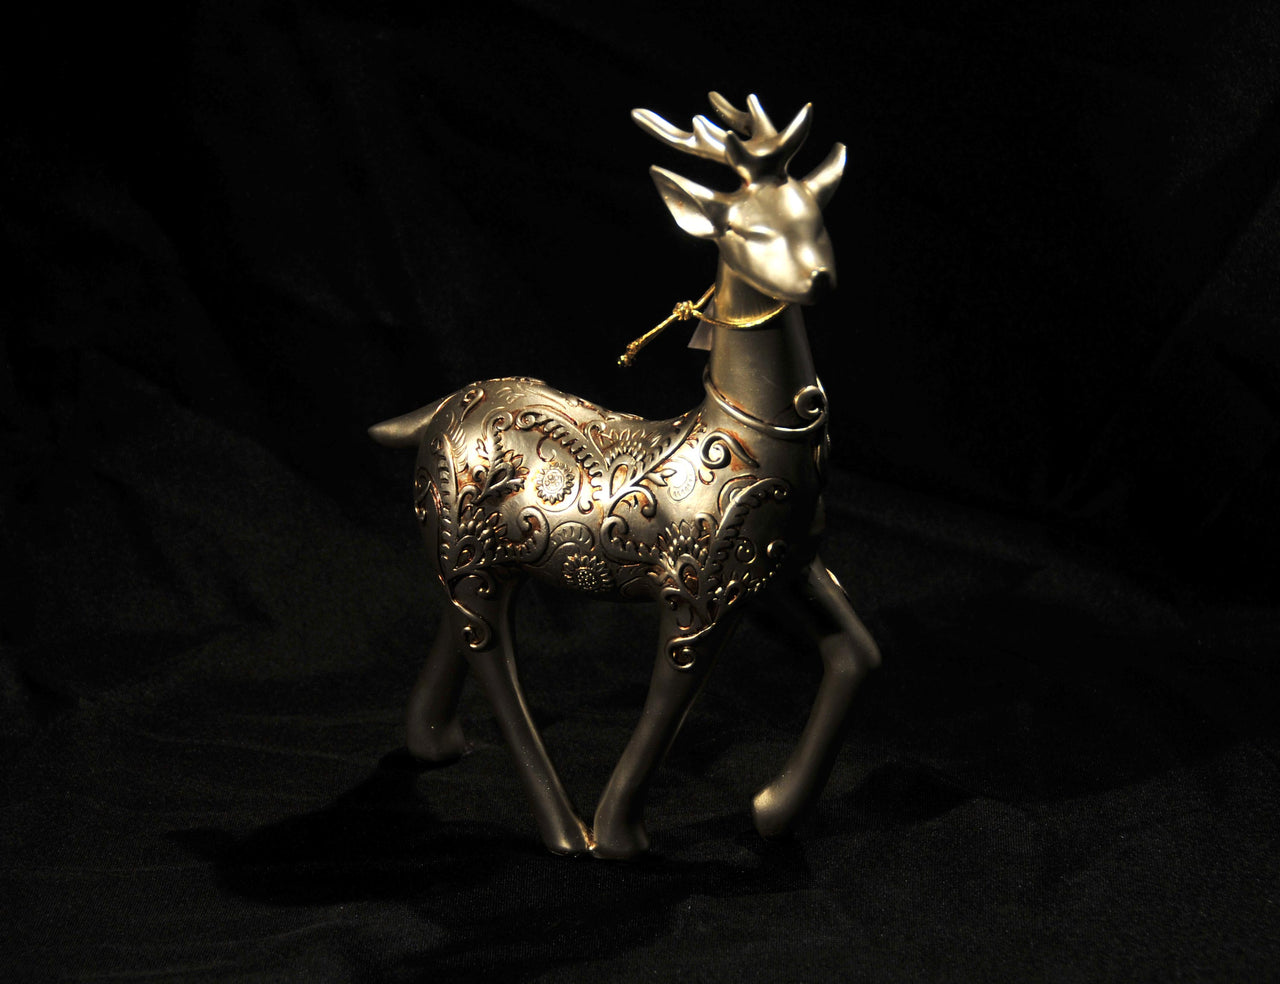 HCHD5057 - Reindeer Facing Left